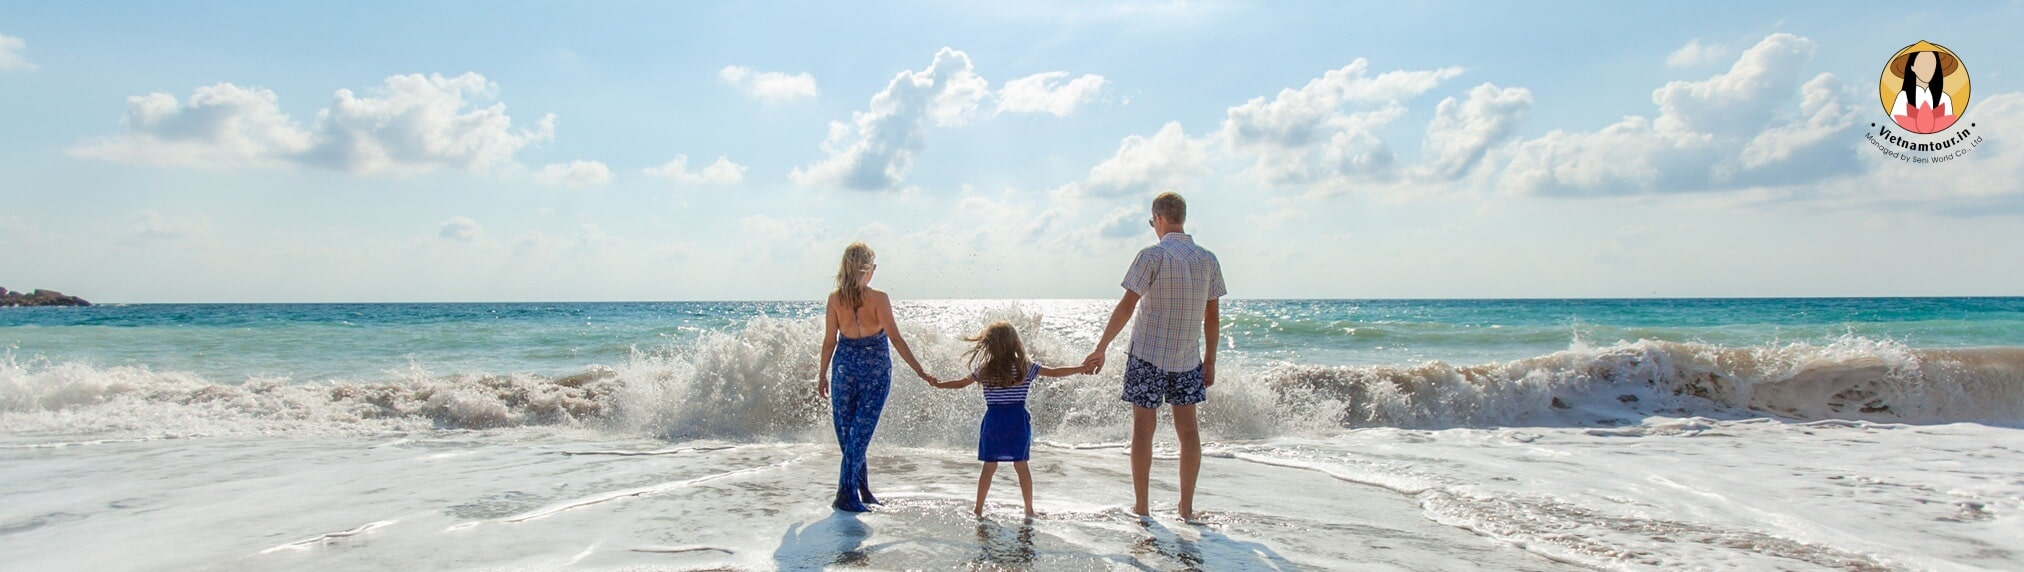 Vietnam family holidays for Indian customers